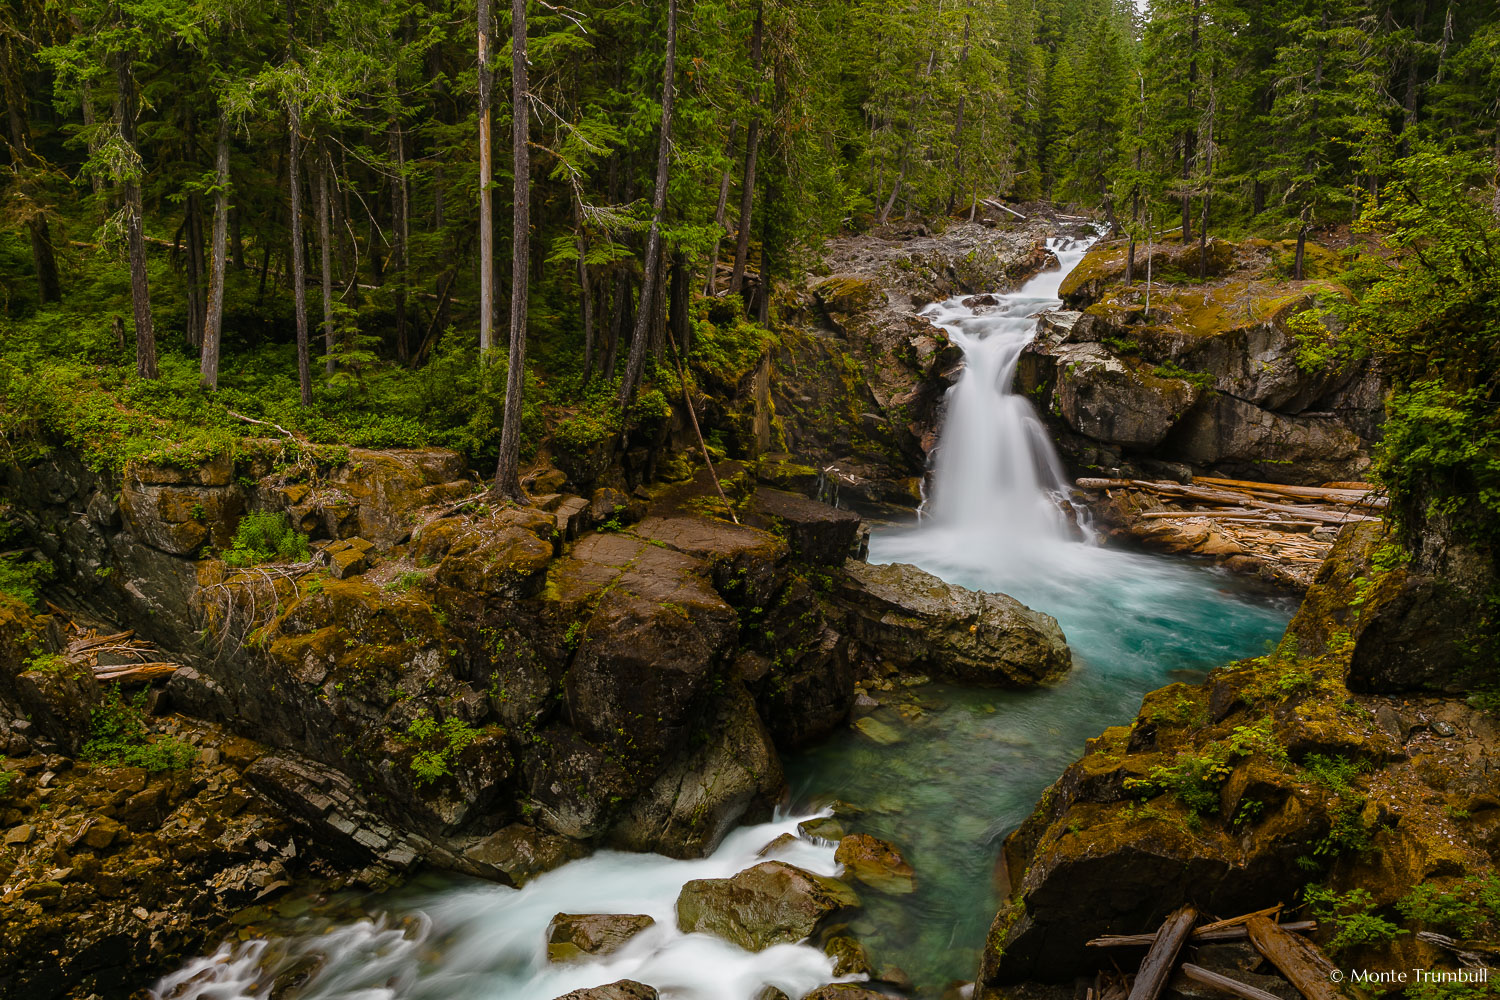 Woodland Serenity - The Ohanapecosh River winds through a dense green forest and drops over Silver Falls into an aquamarine colored pool in Mount Rainier National Park, Washington.